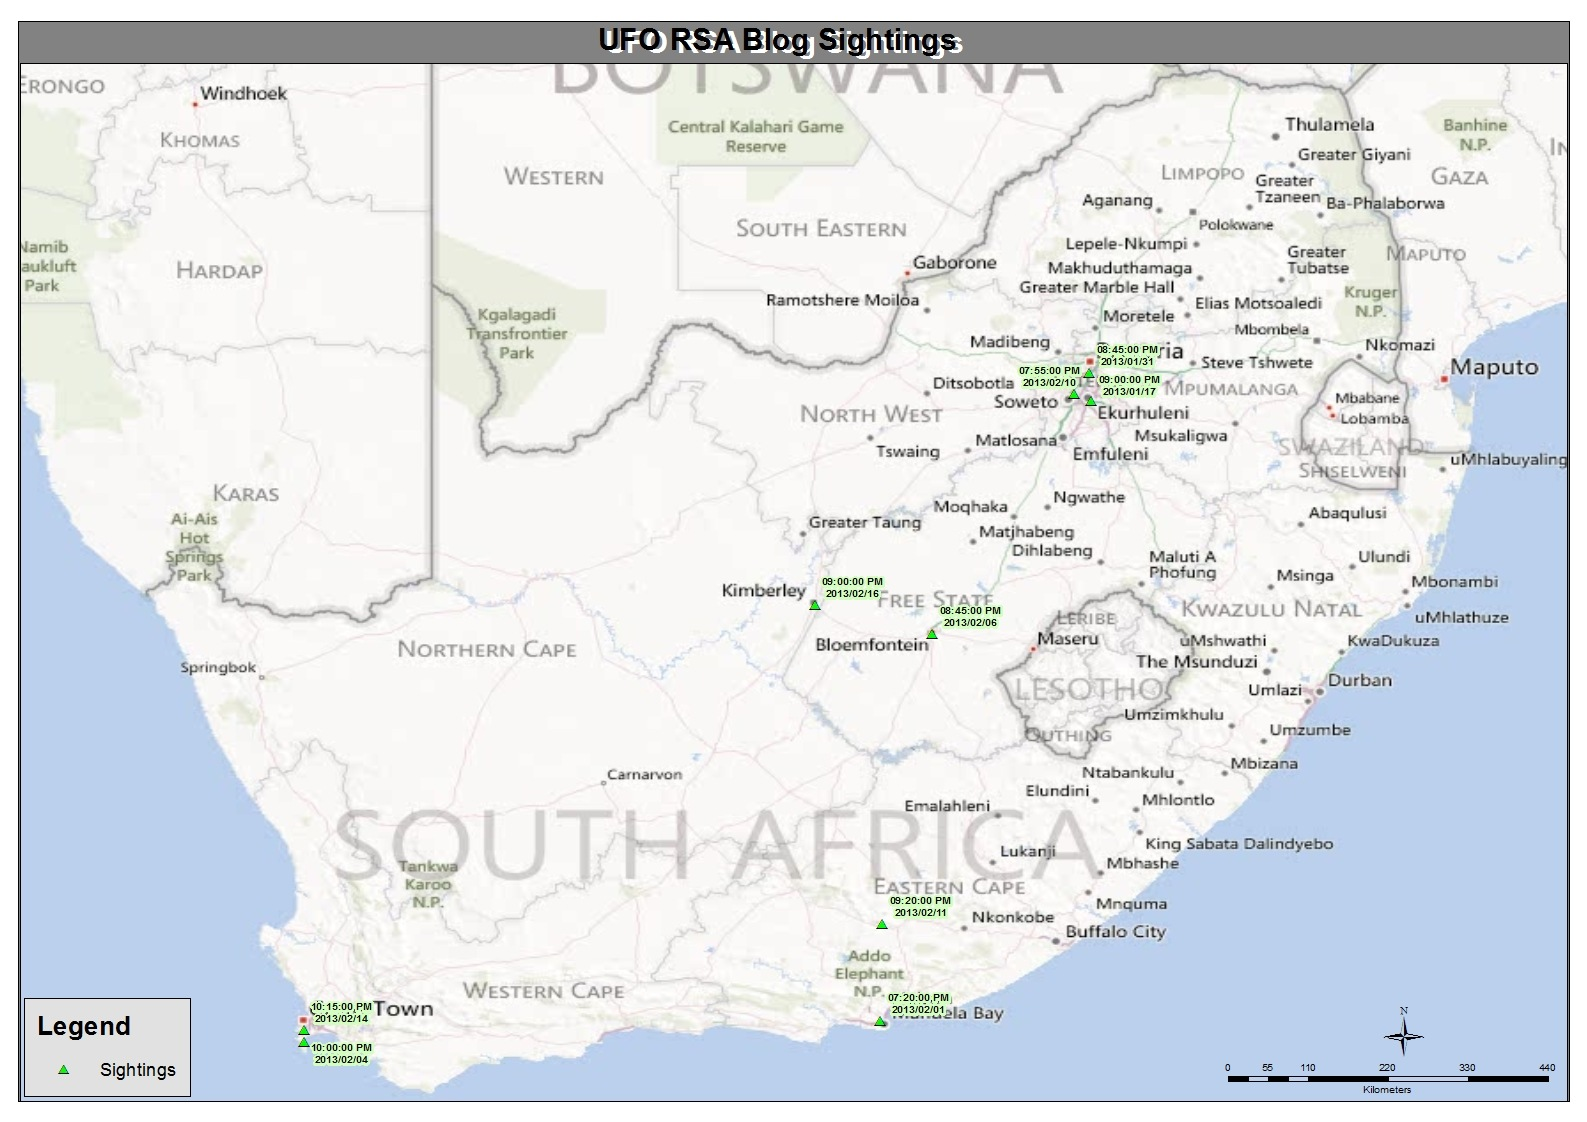 ufo sightings in south africa february 2013 map